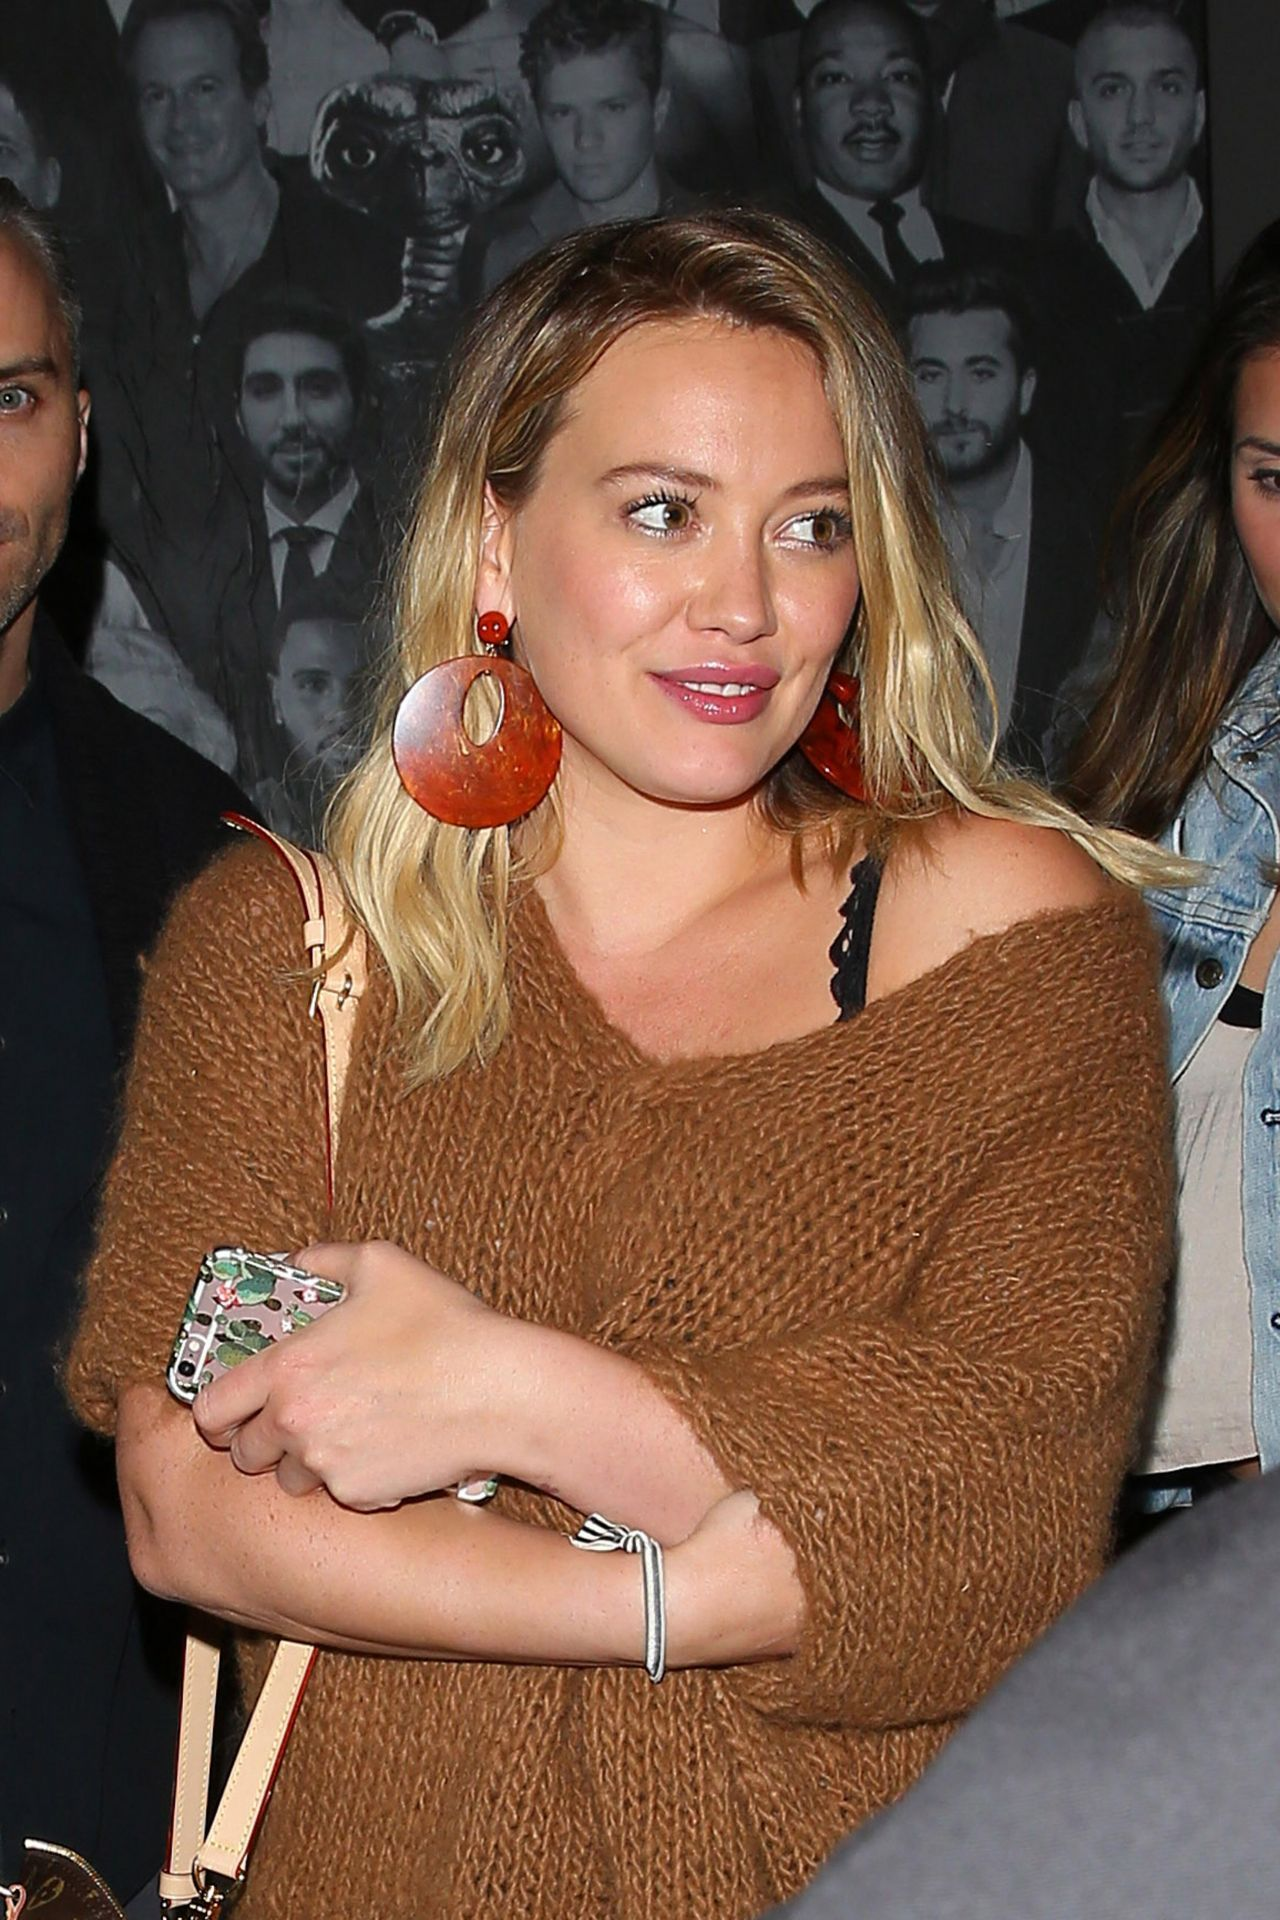 Hilary duff night out style leaving catch in west hollywood oct